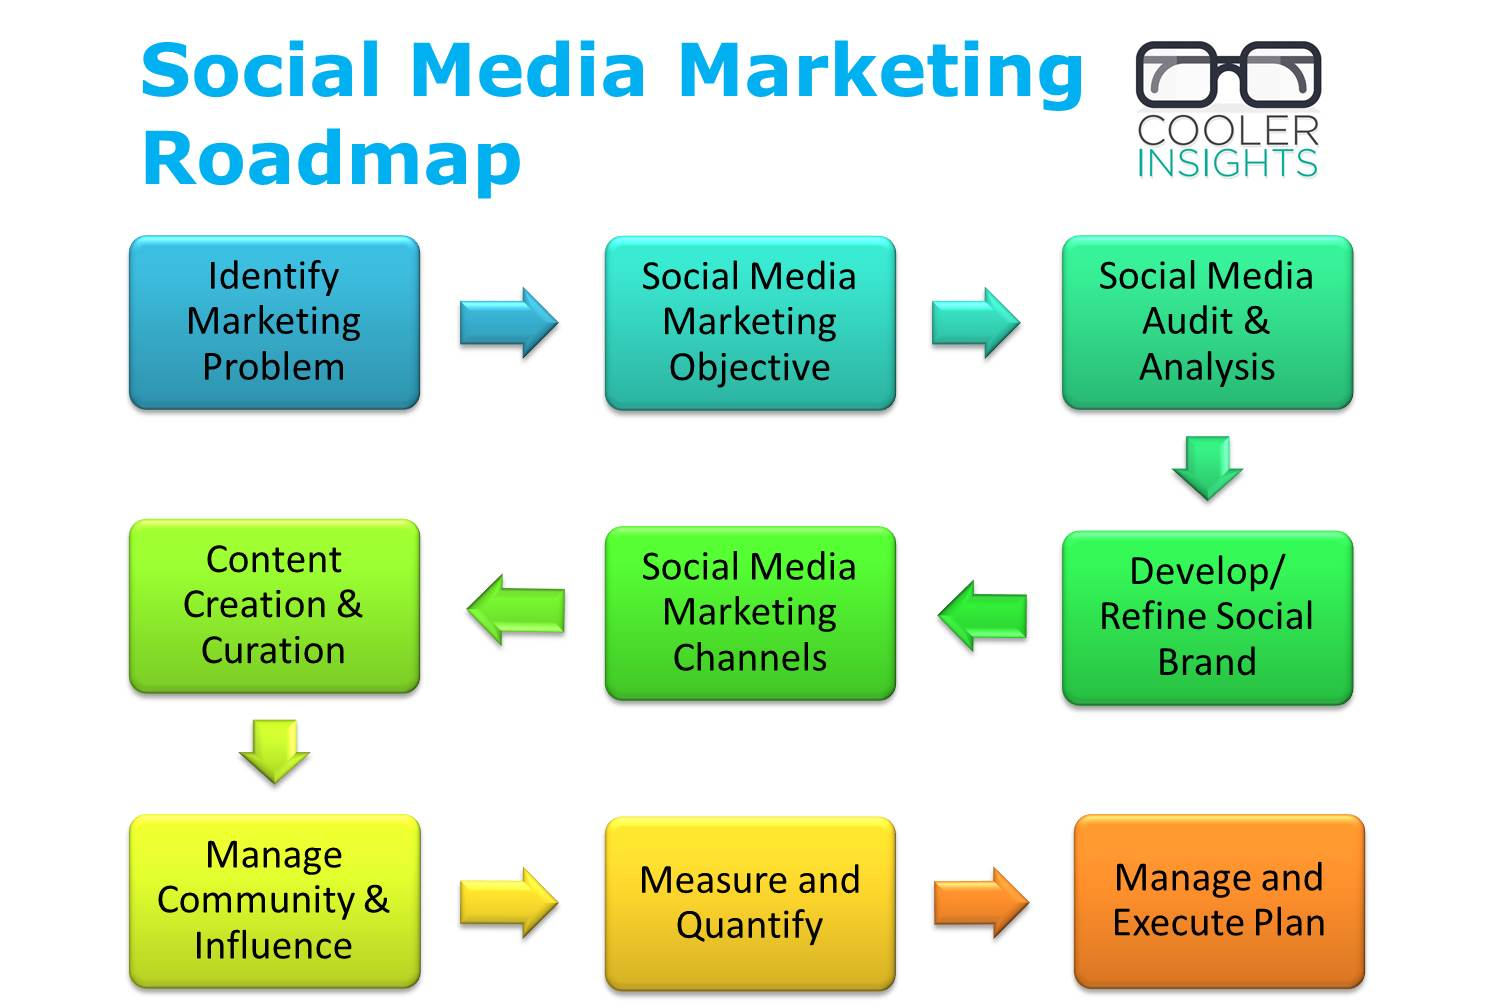 social-media-marketing-roadmap-a-simple-9-step-process.jpg